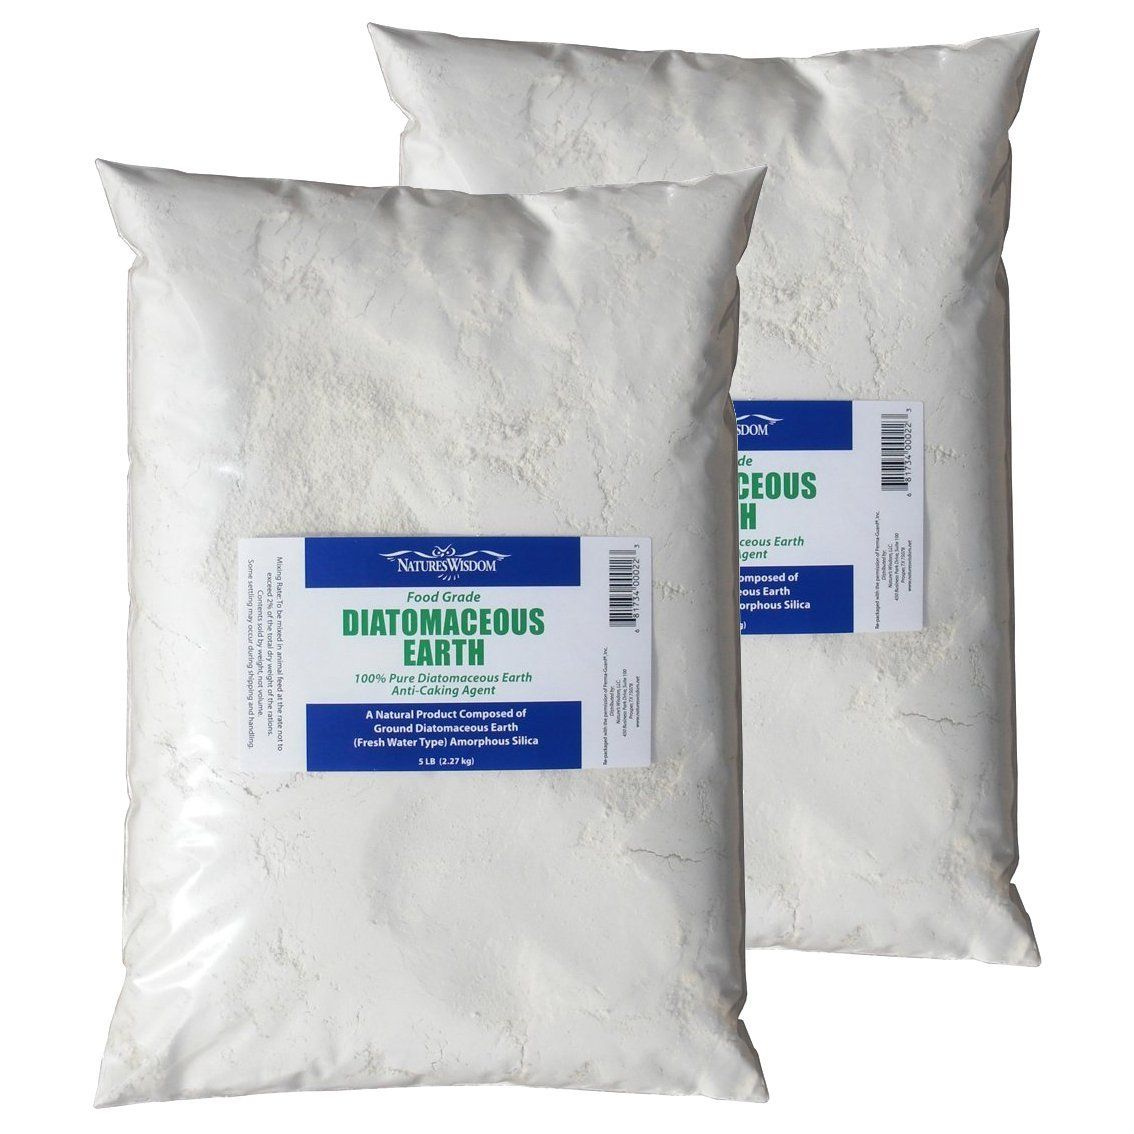 Food Grade Diatomaceous Earth 10 lb. by Natures Wisdom 25